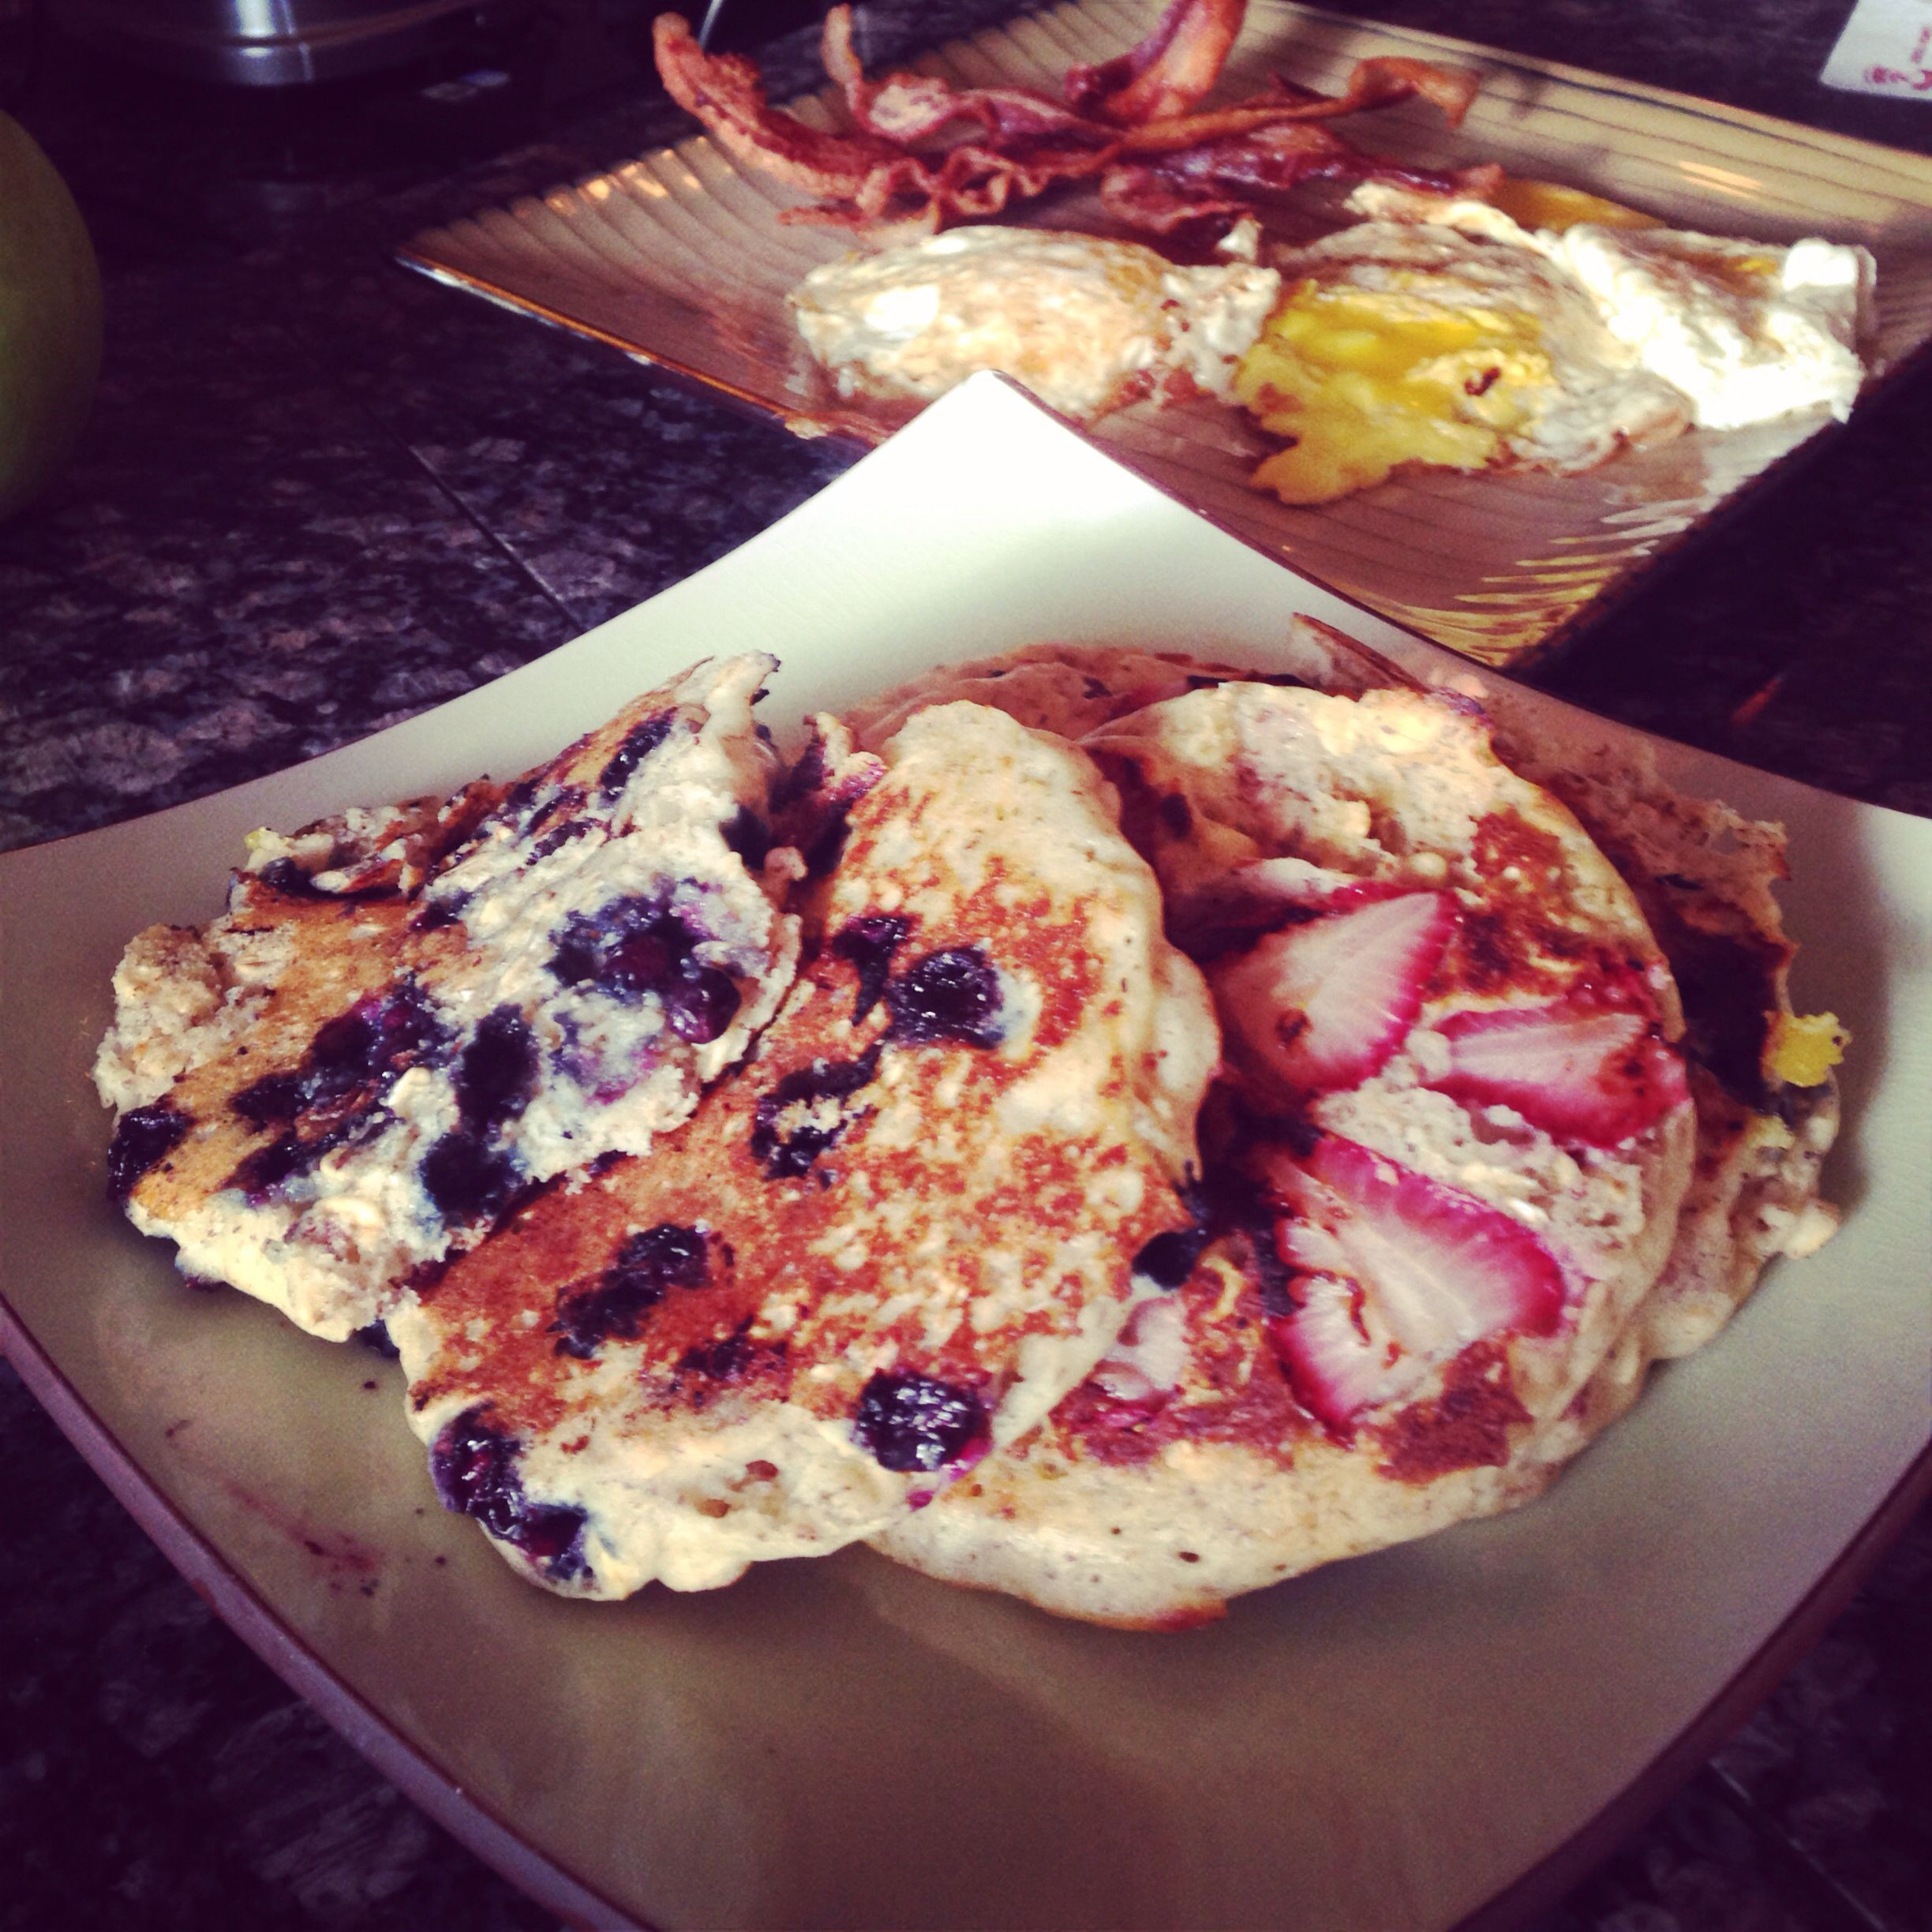 Breakfast for dinner: GF strawberry and blueberry pancakes made with Pamela's mix with rolled oats and ground flax mixed in, smokehouse bacon, and three large brown eggs fried in the bacon grease. Oh my crap. So good. @Cherie Miller